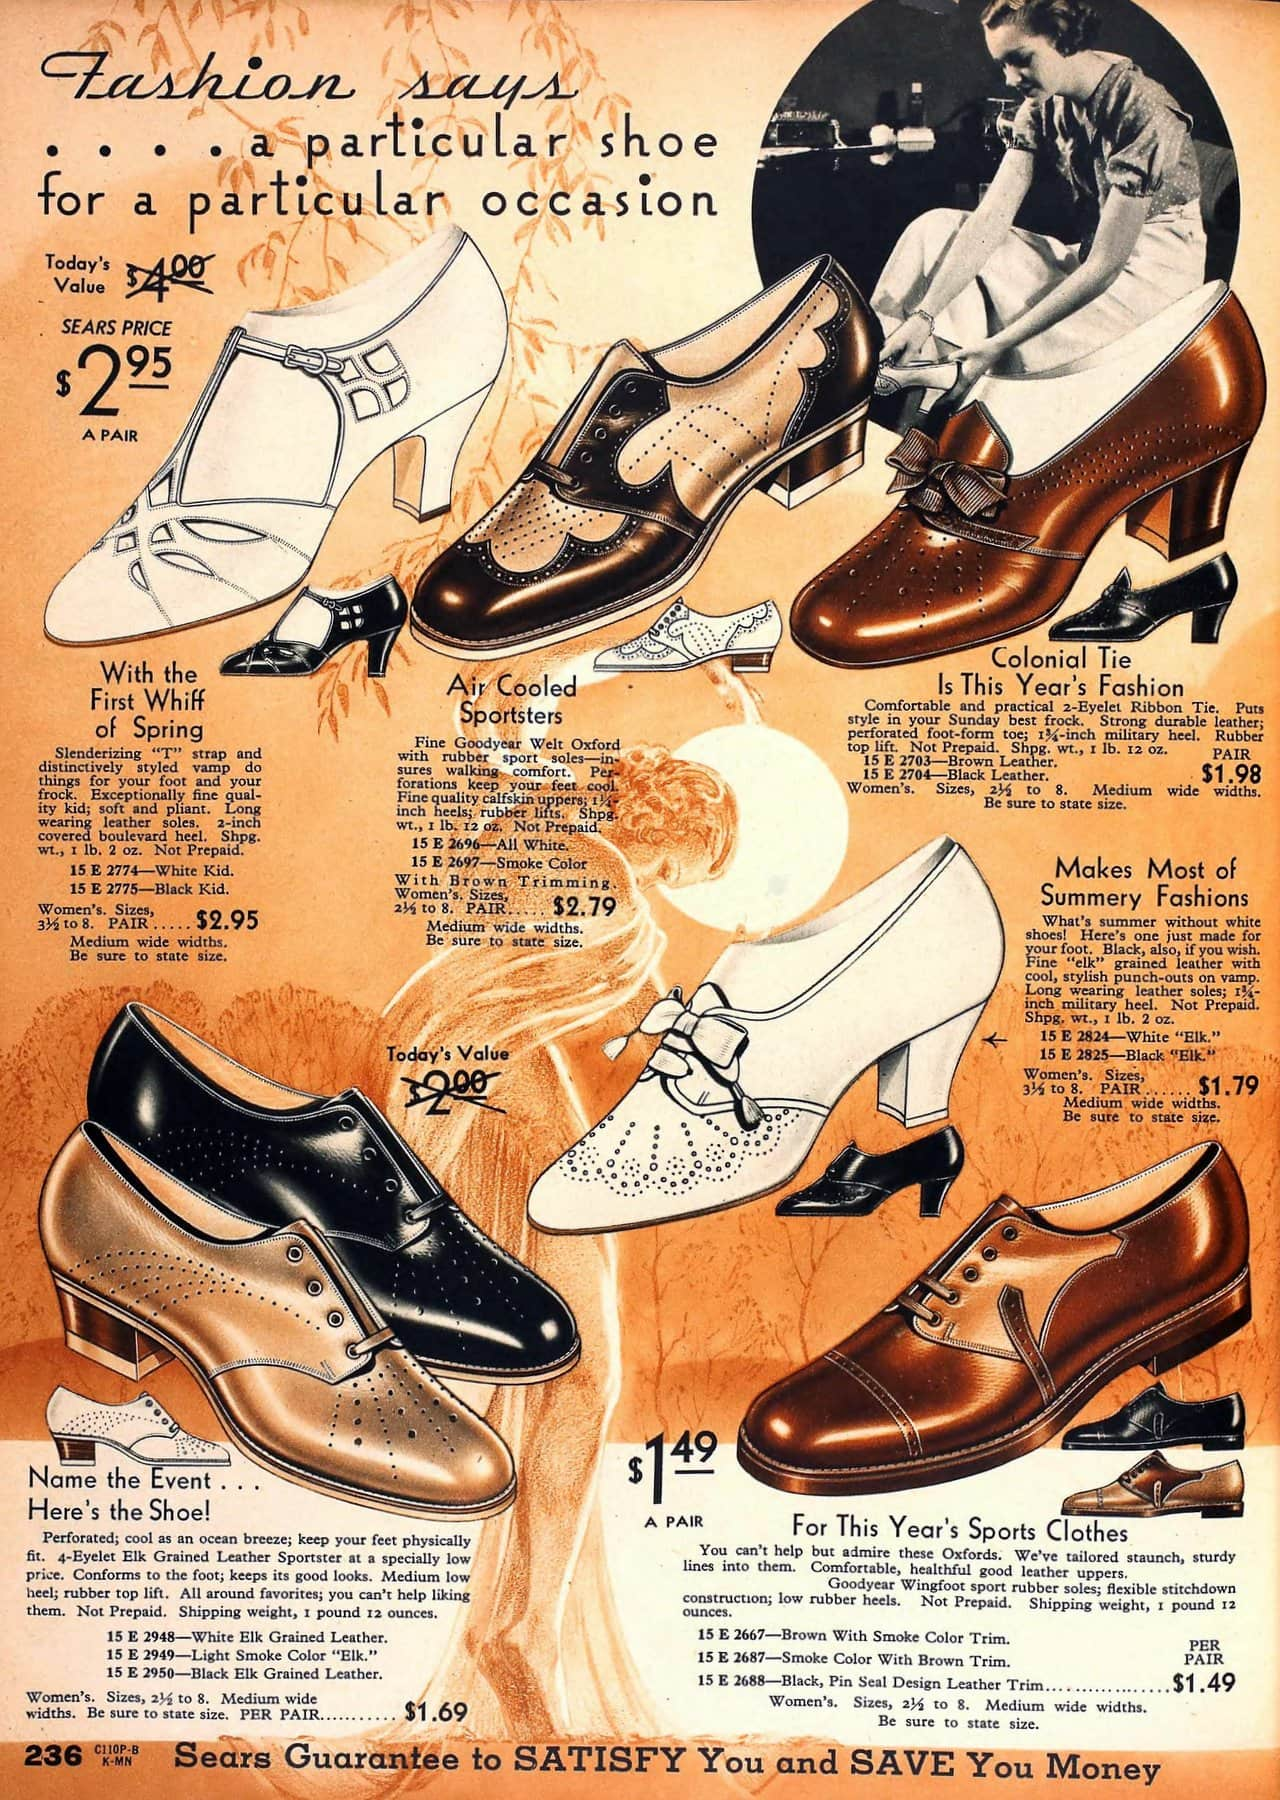 Vintage 30s shoes for women - Retro footwear fashion from 1934 (1)